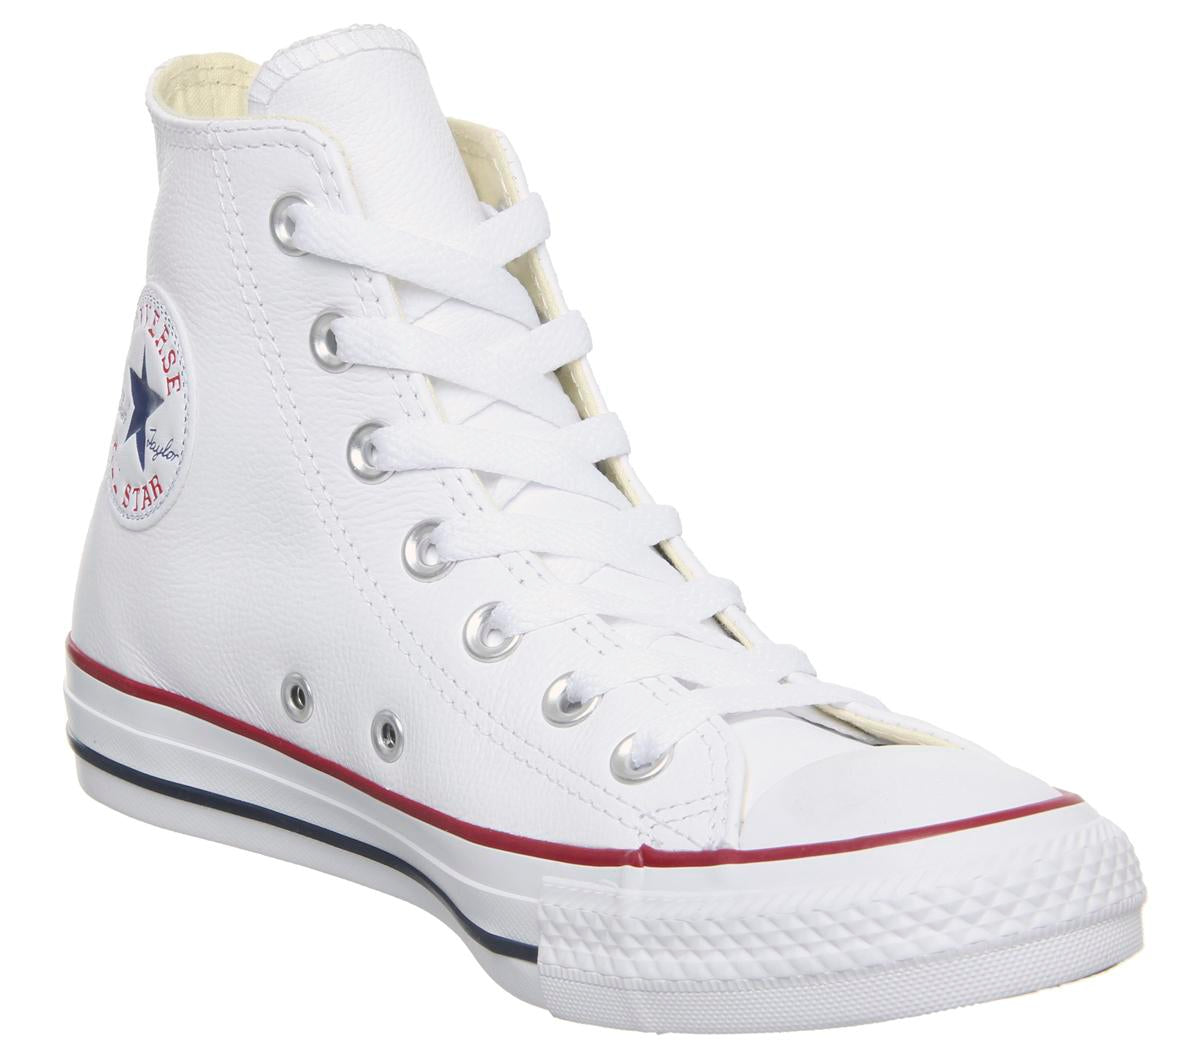 Womens Converse All Star Hi Leather Optical White Trainers